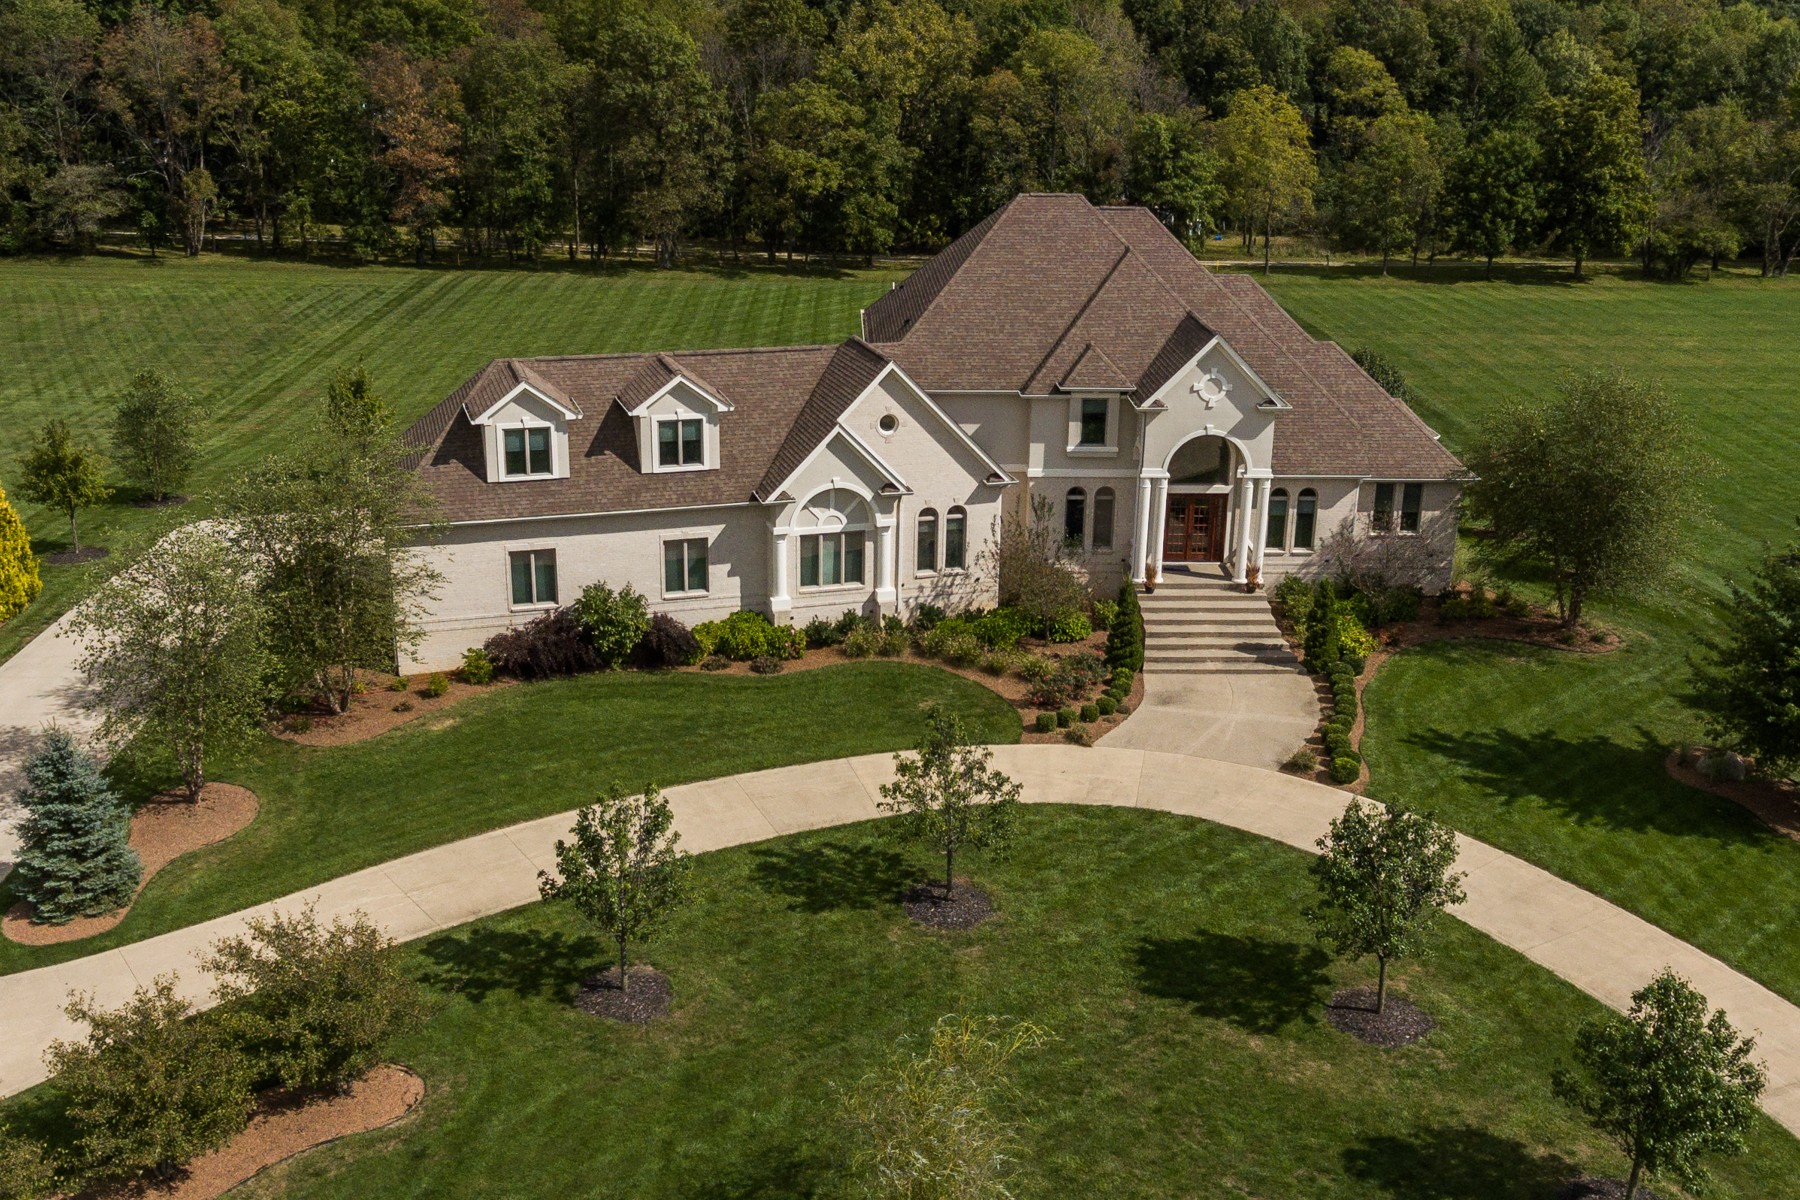 Maison unifamiliale pour l Vente à Bucolic Views & Elegant Spaces 859 Lyn Lea Lane Lebanon, Indiana, 46052 États-Unis